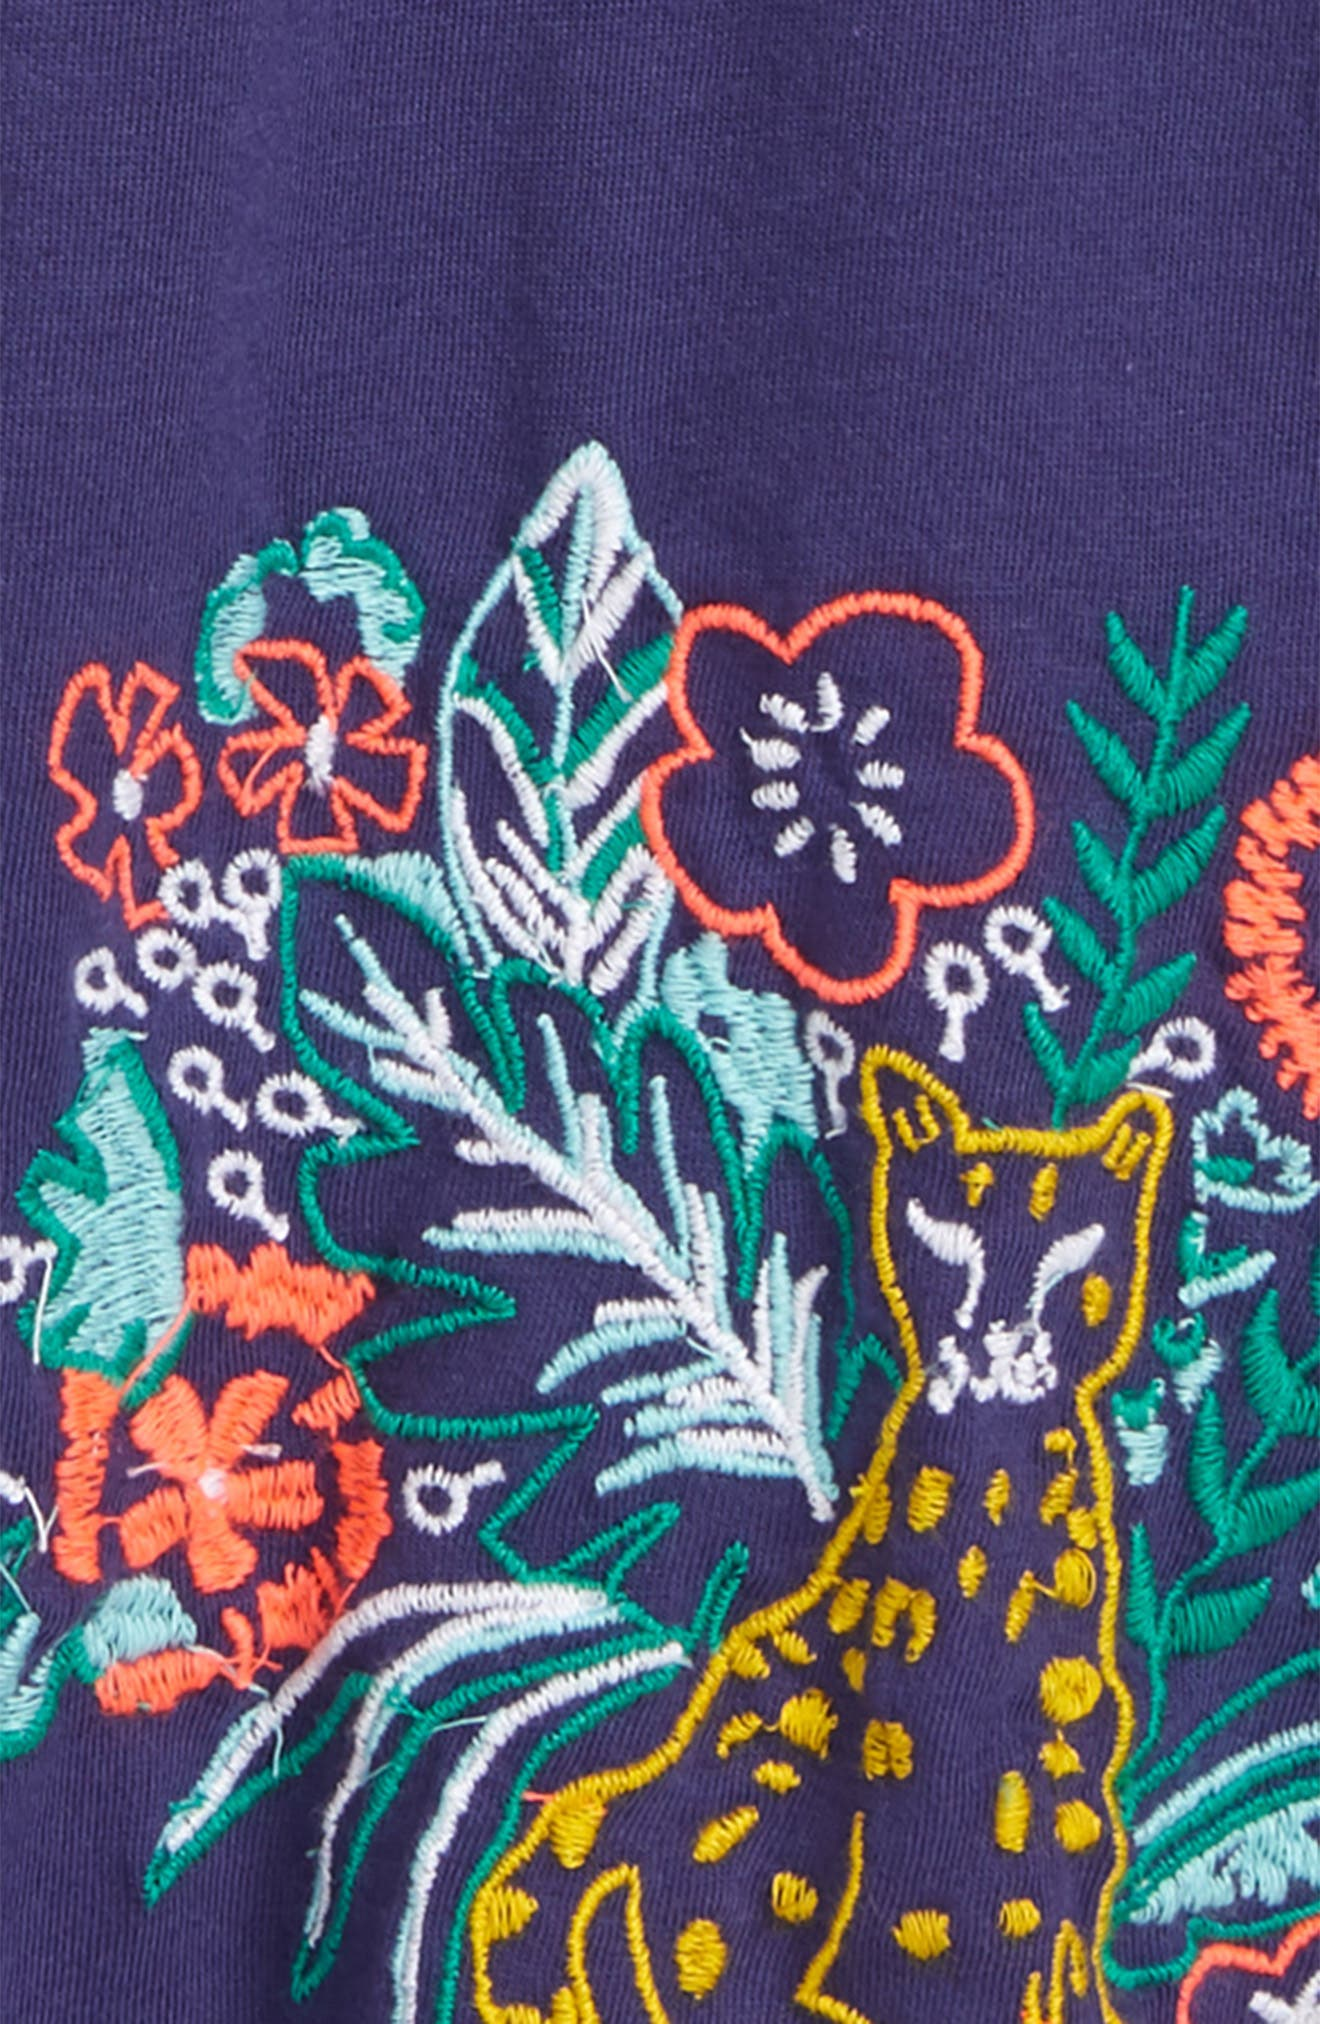 Embroidered Swing Tee,                             Alternate thumbnail 2, color,                             410